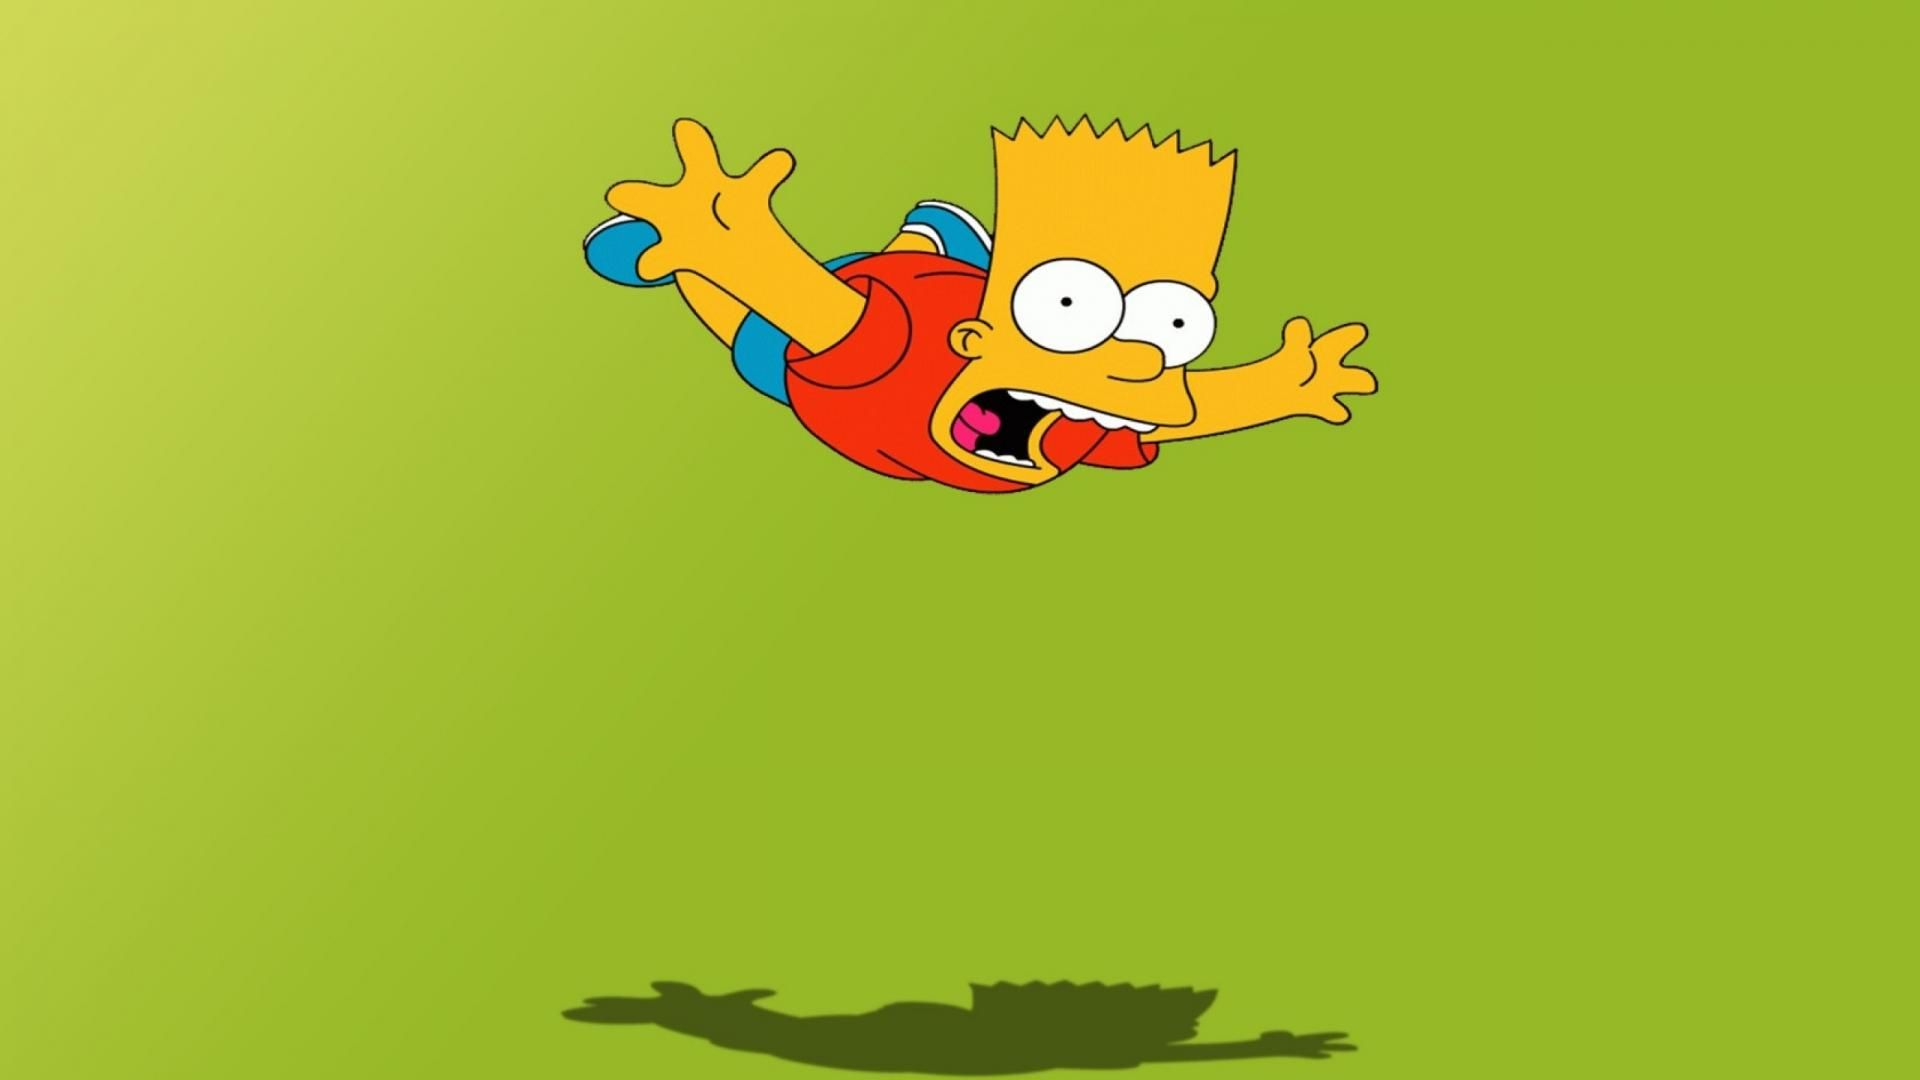 1920x1080 Bart Simpson Wallpaper - Wallpaper, High Definition, High Quality ...